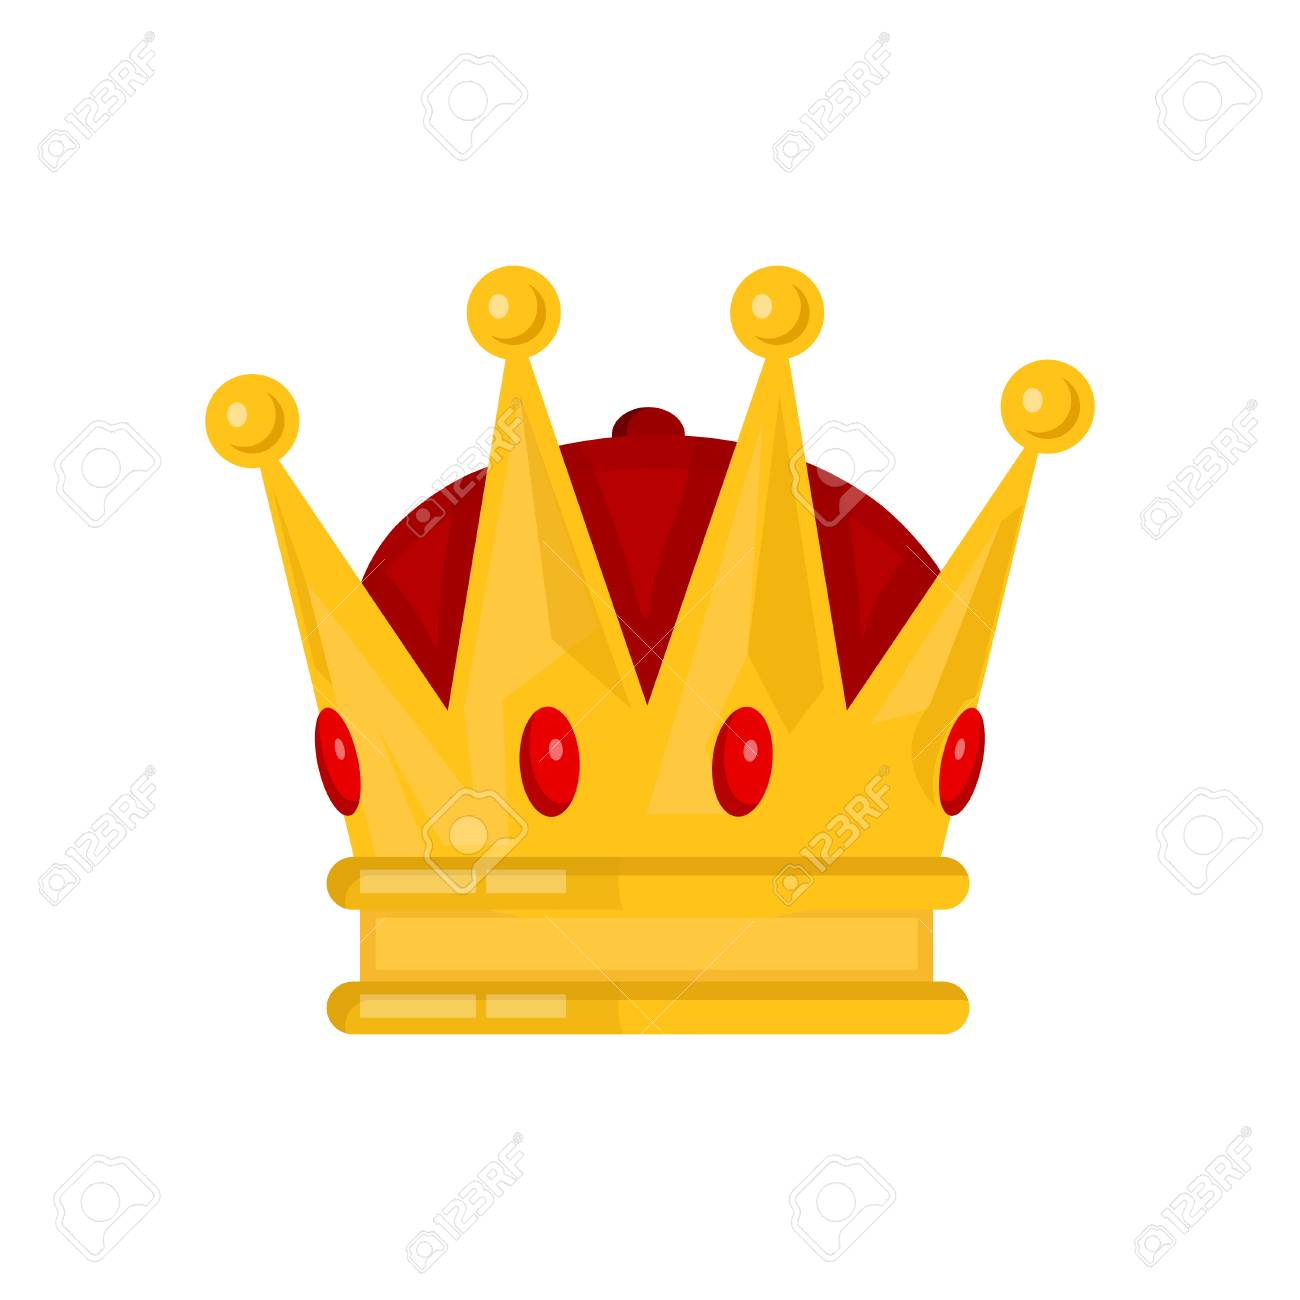 Gold King Crown Vector Flat Cartoon Illustration Icon Isolated On White Backgound Stock Vector